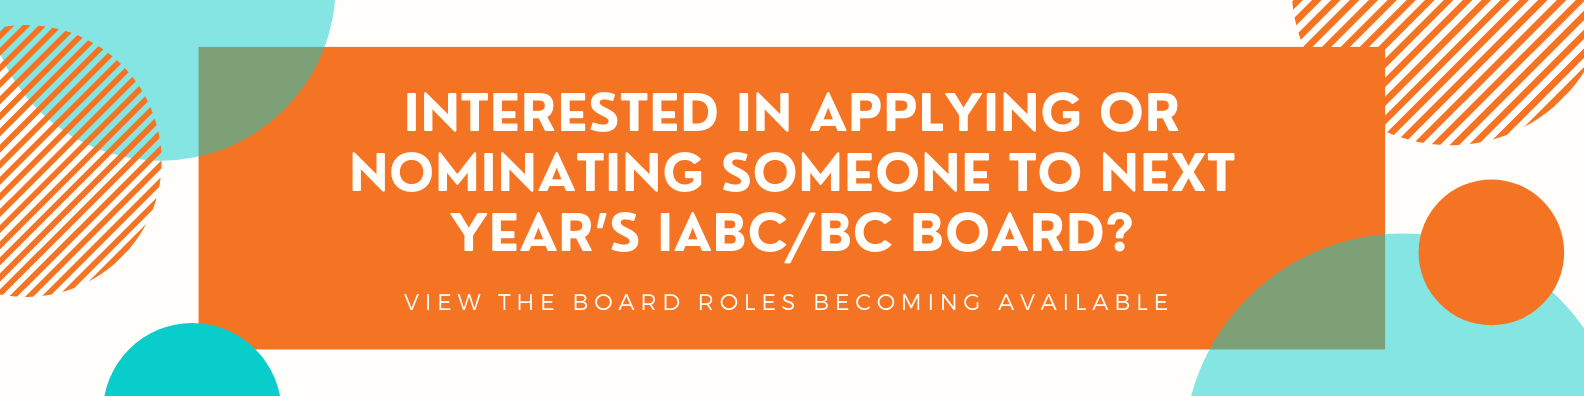 Apply for the IABC/BC Board